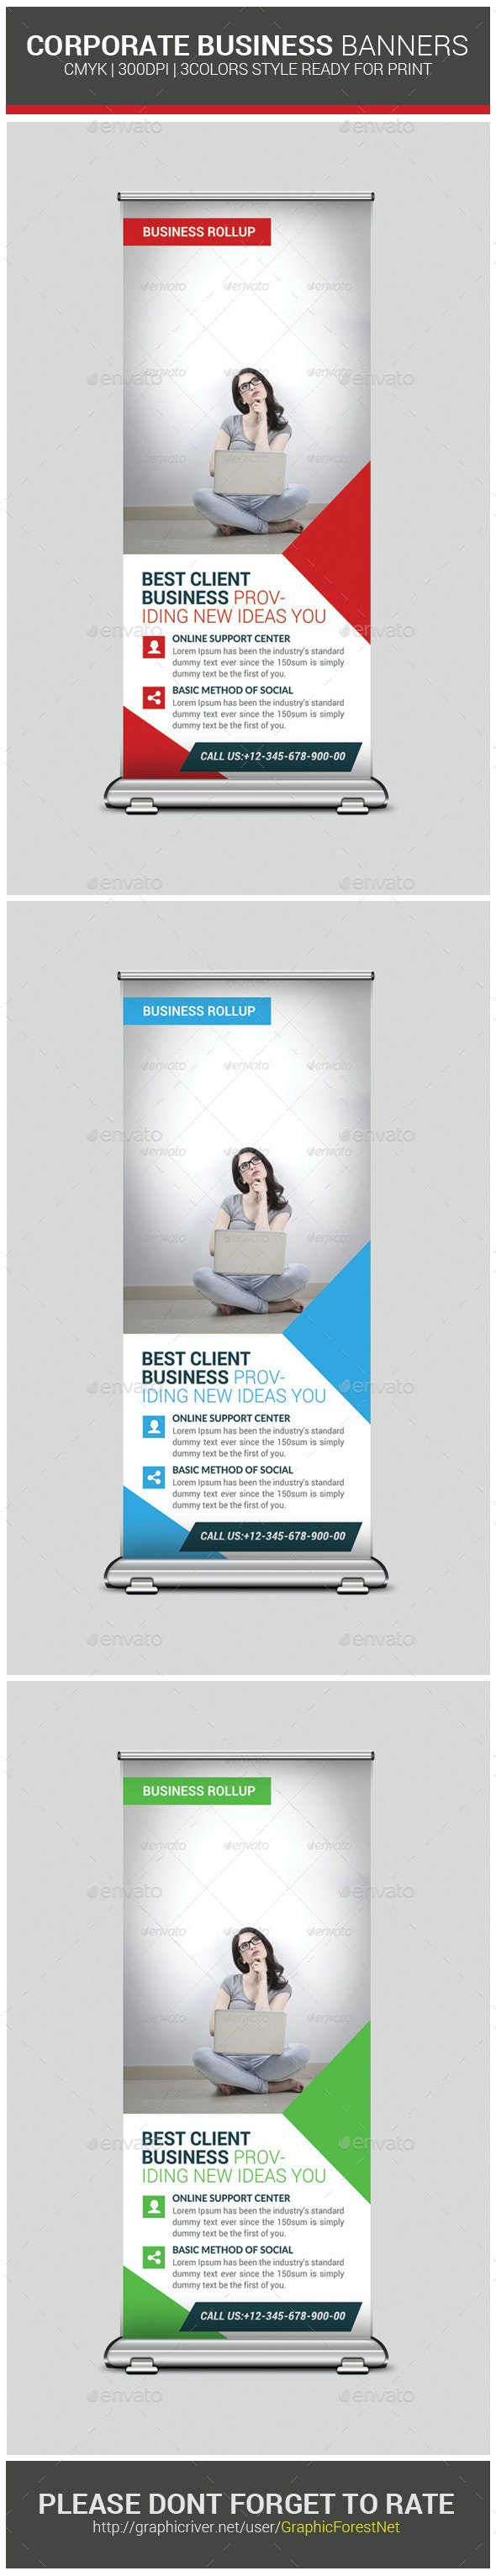 Corporate Business Banners Template - Signage Print Templates